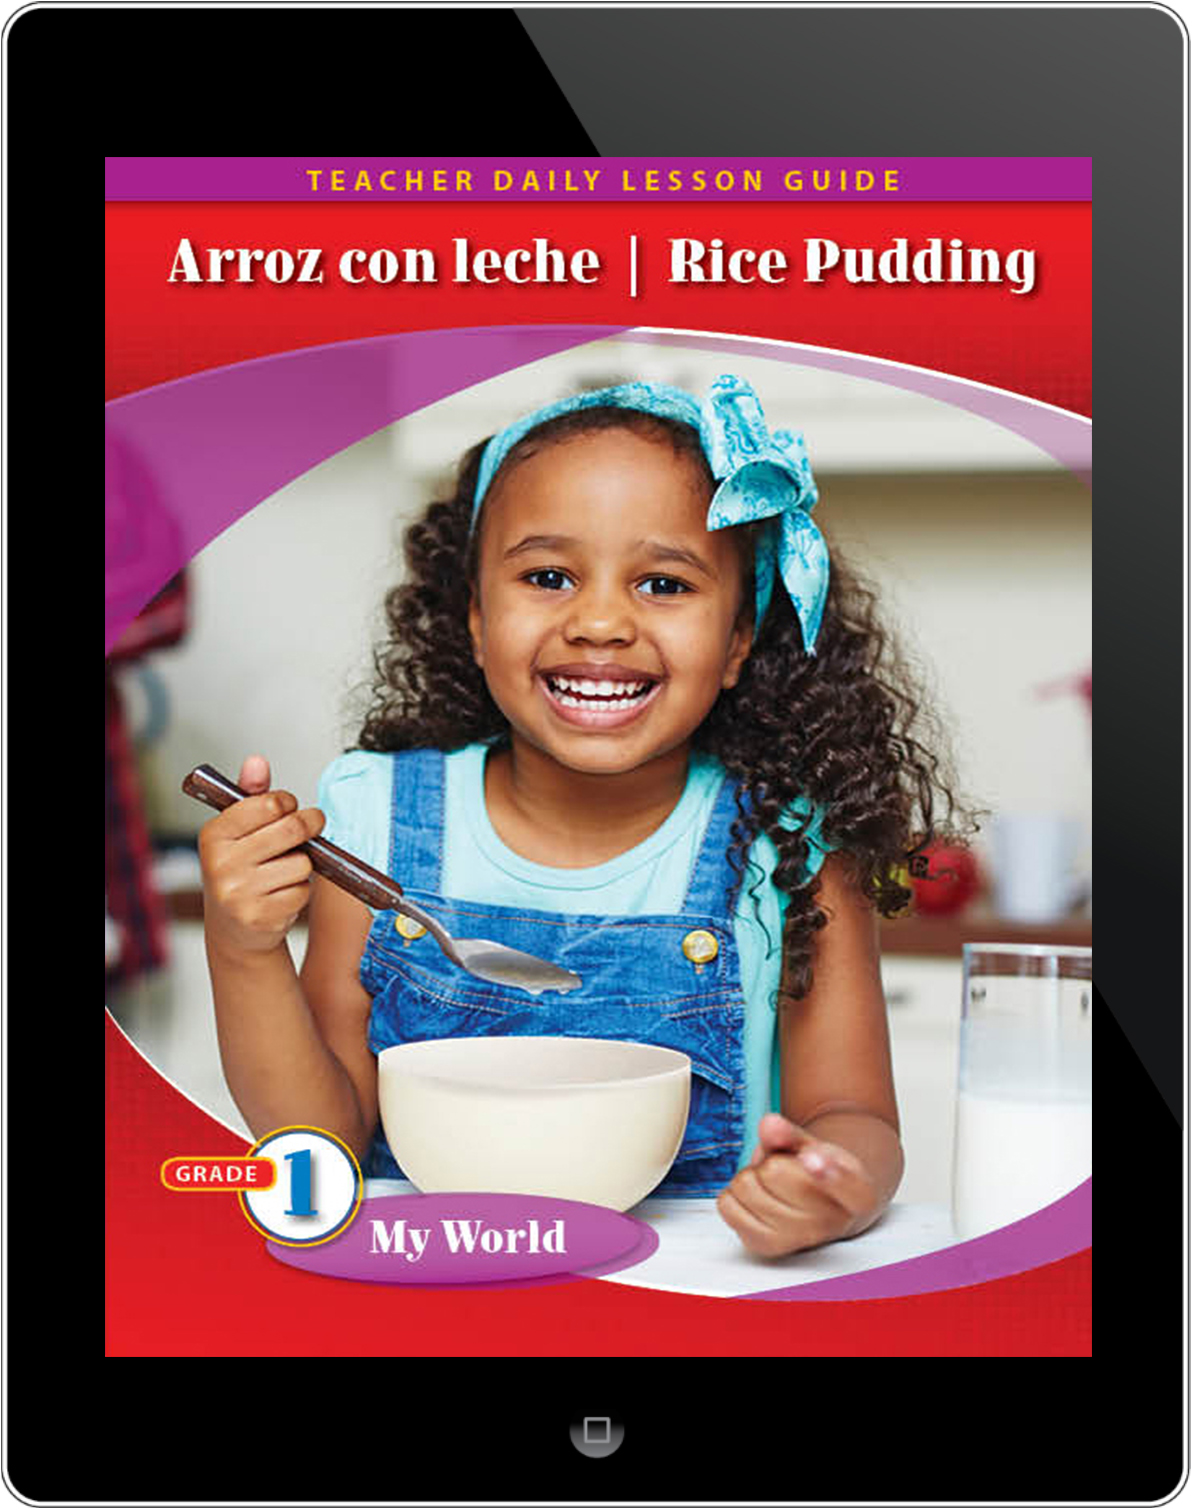 Pathways2.0 Grade 1 My World Unit: Arroz con Leche/Rice Pudding Daily Lesson Guide 5 Year License